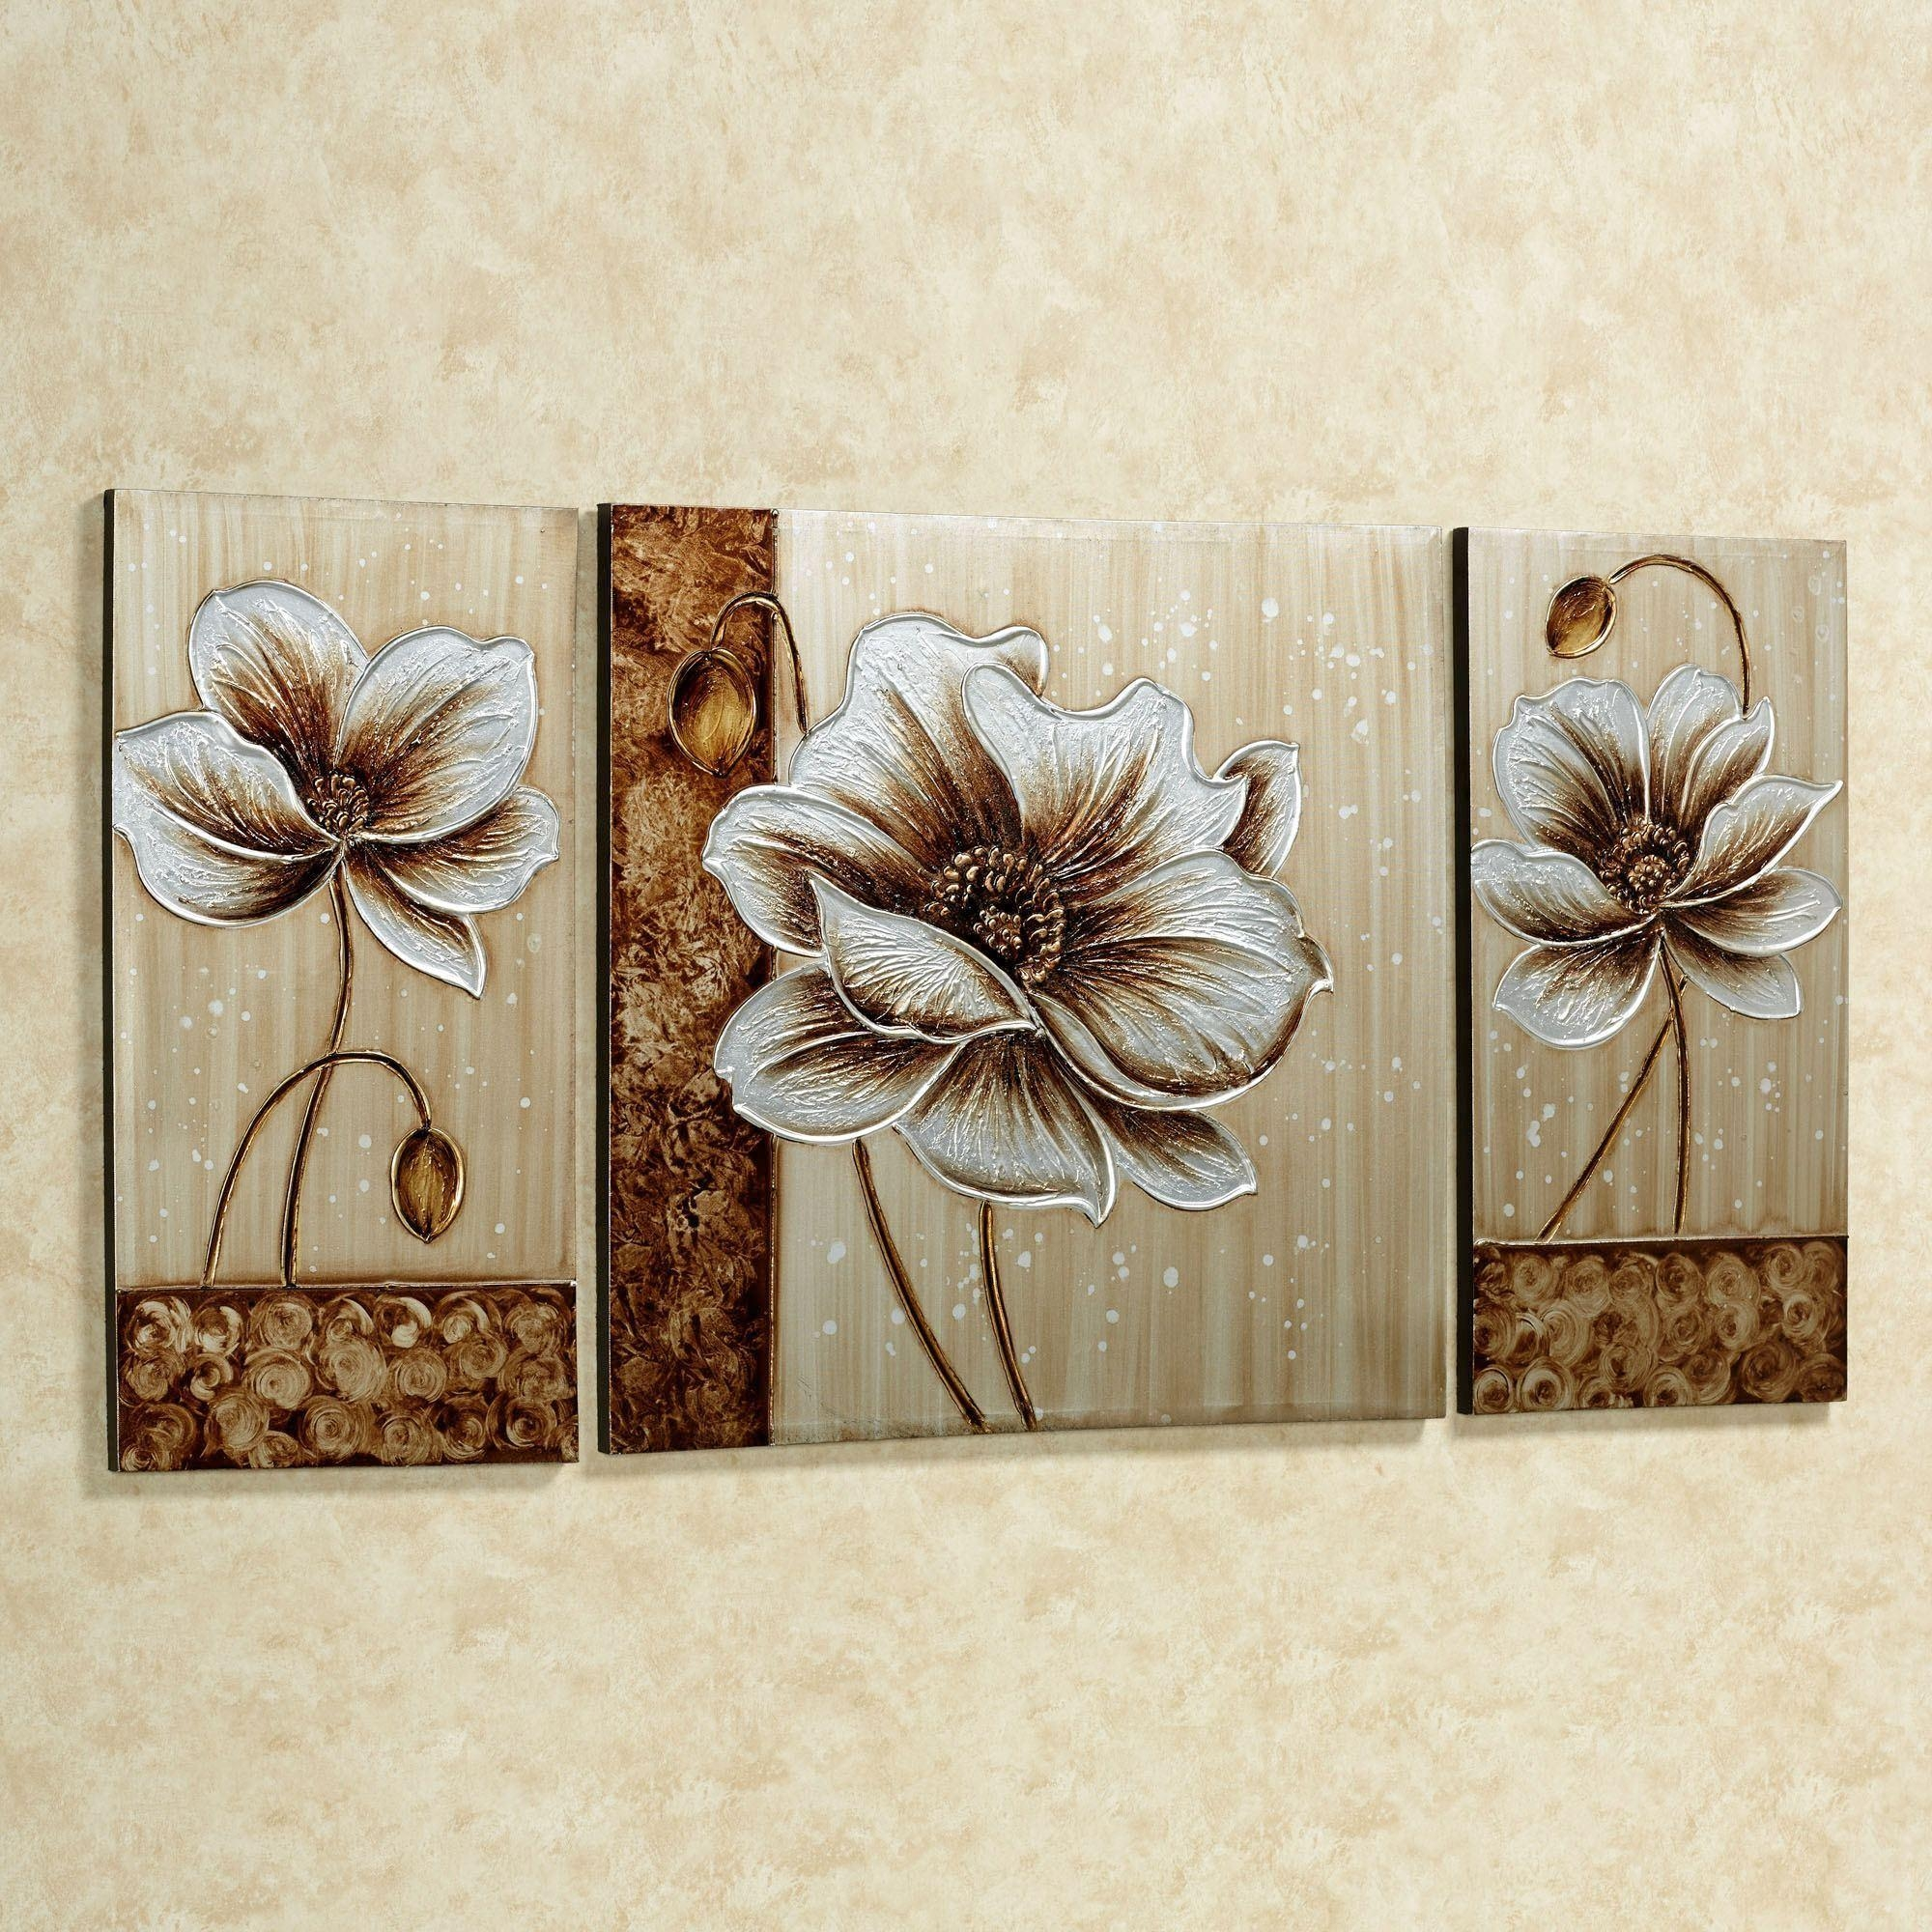 Subtle Elegance Floral Canvas Wall Art Set Inside Three Piece Wall Art Sets (Image 9 of 20)